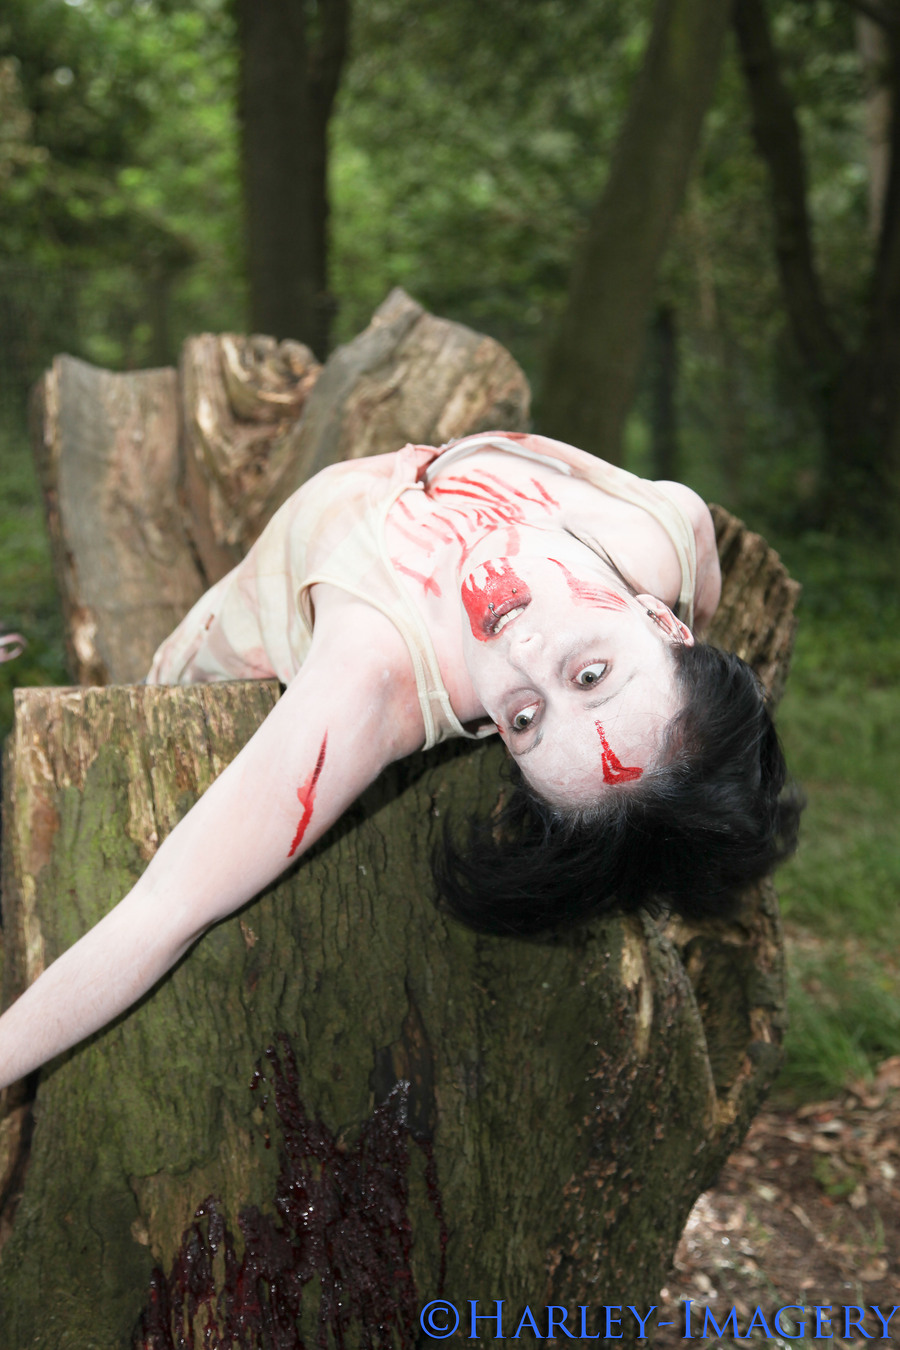 zombie death / Photography by Harley / Uploaded 14th July 2012 @ 07:01 PM